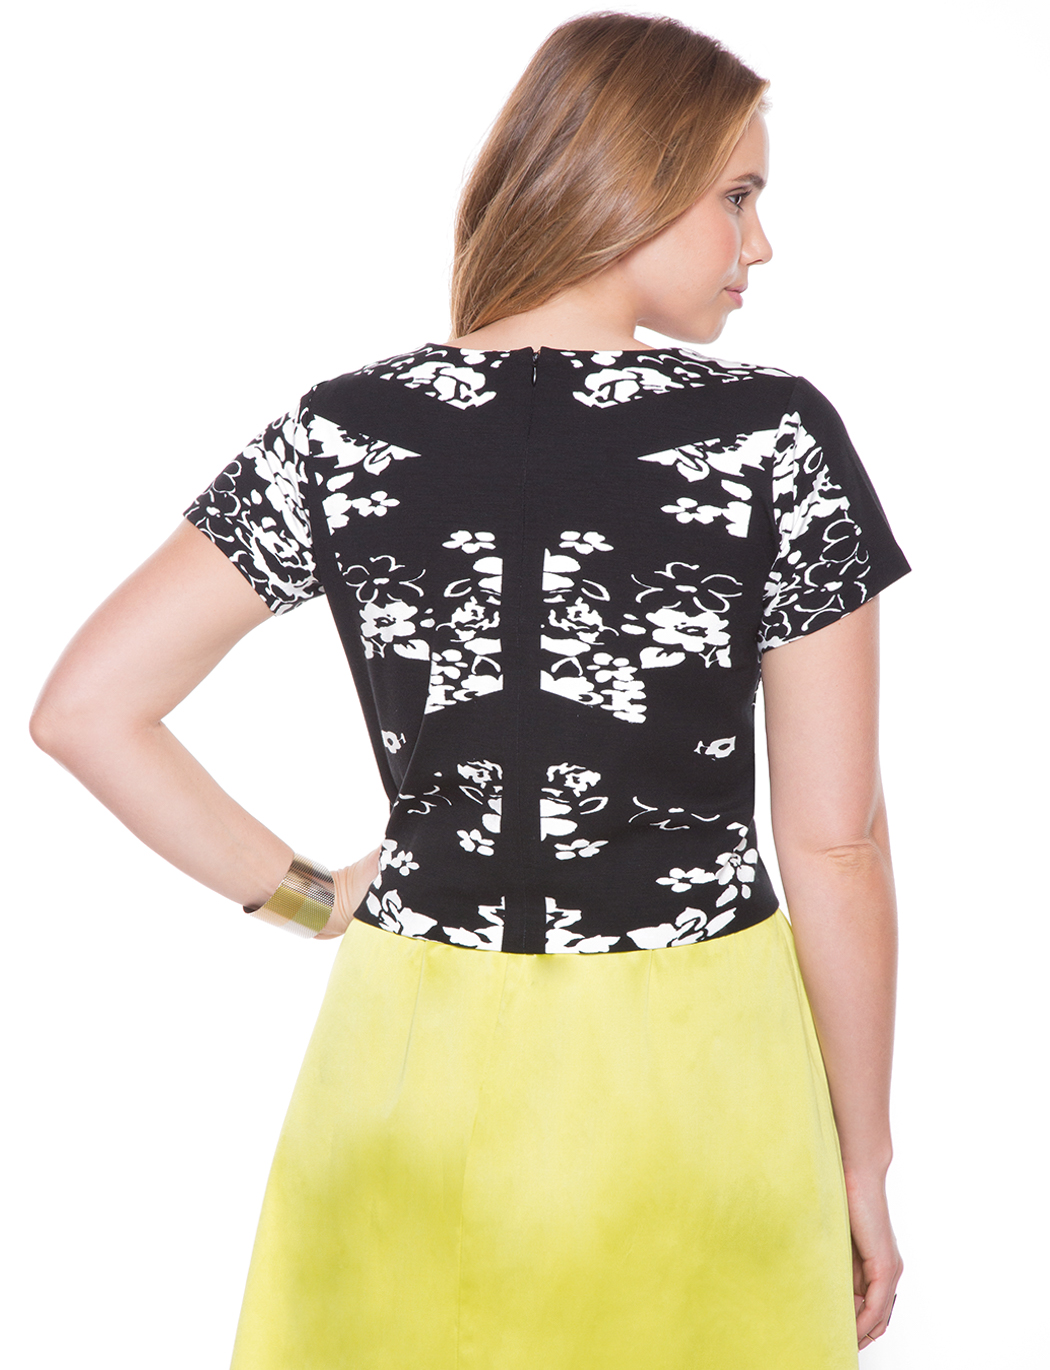 768d9f1b7 Graphic Overlay Floral Top   Women's Plus Size Tops   ELOQUII